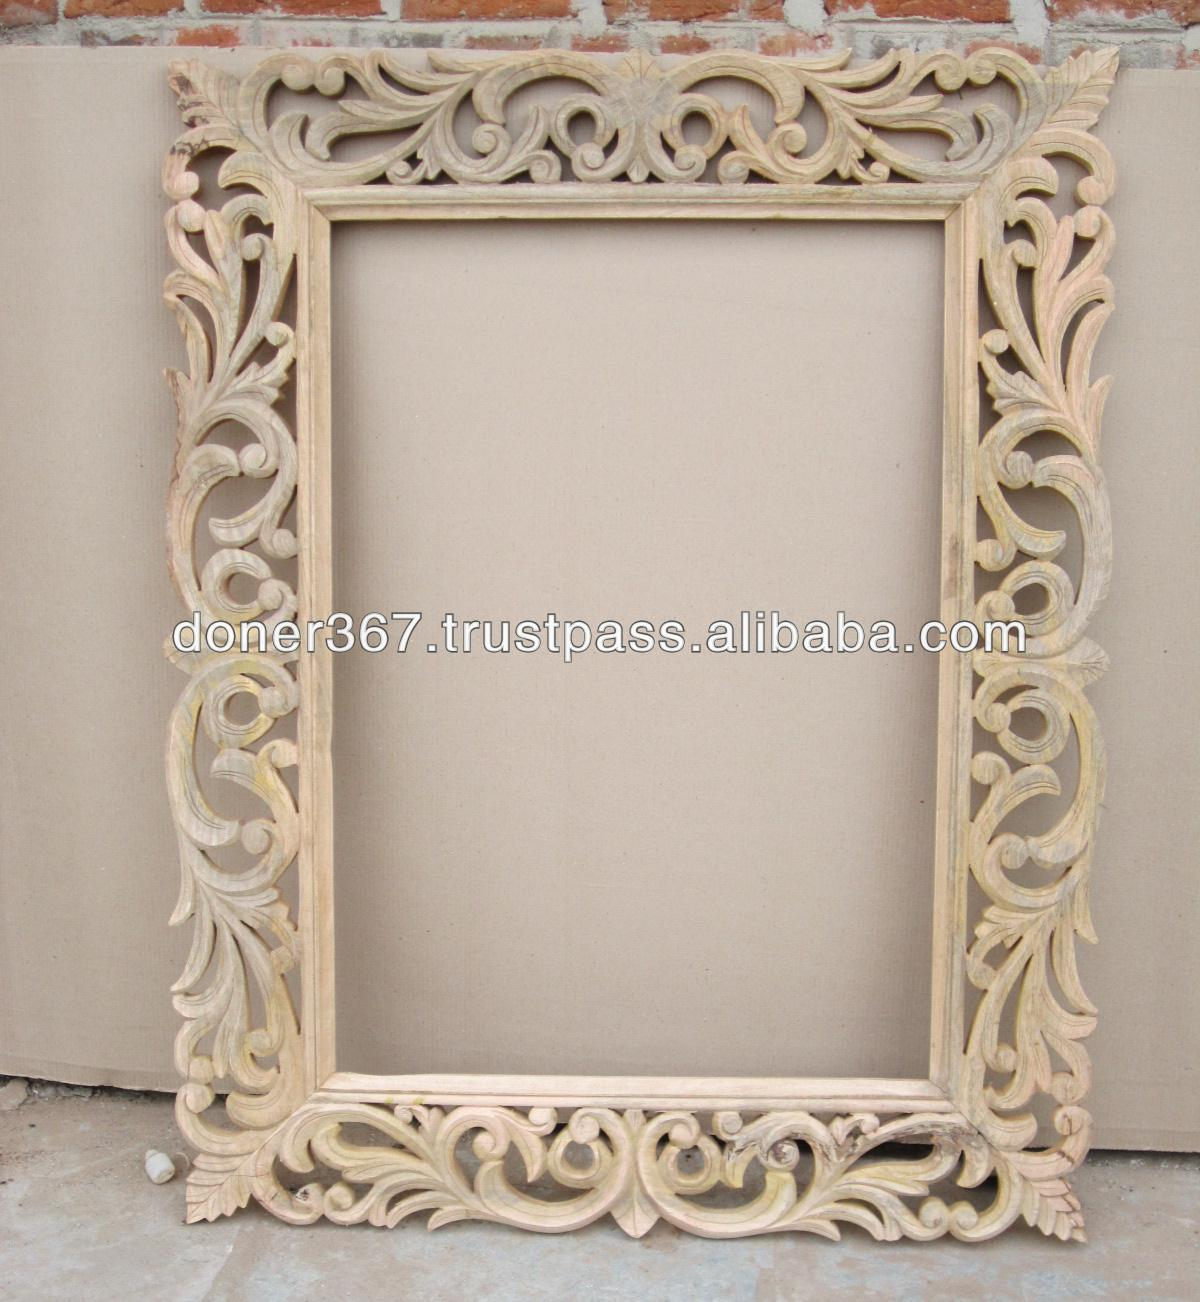 wood mirror frame wood mirror frame suppliers and manufacturers at alibabacom - Mirror Frame